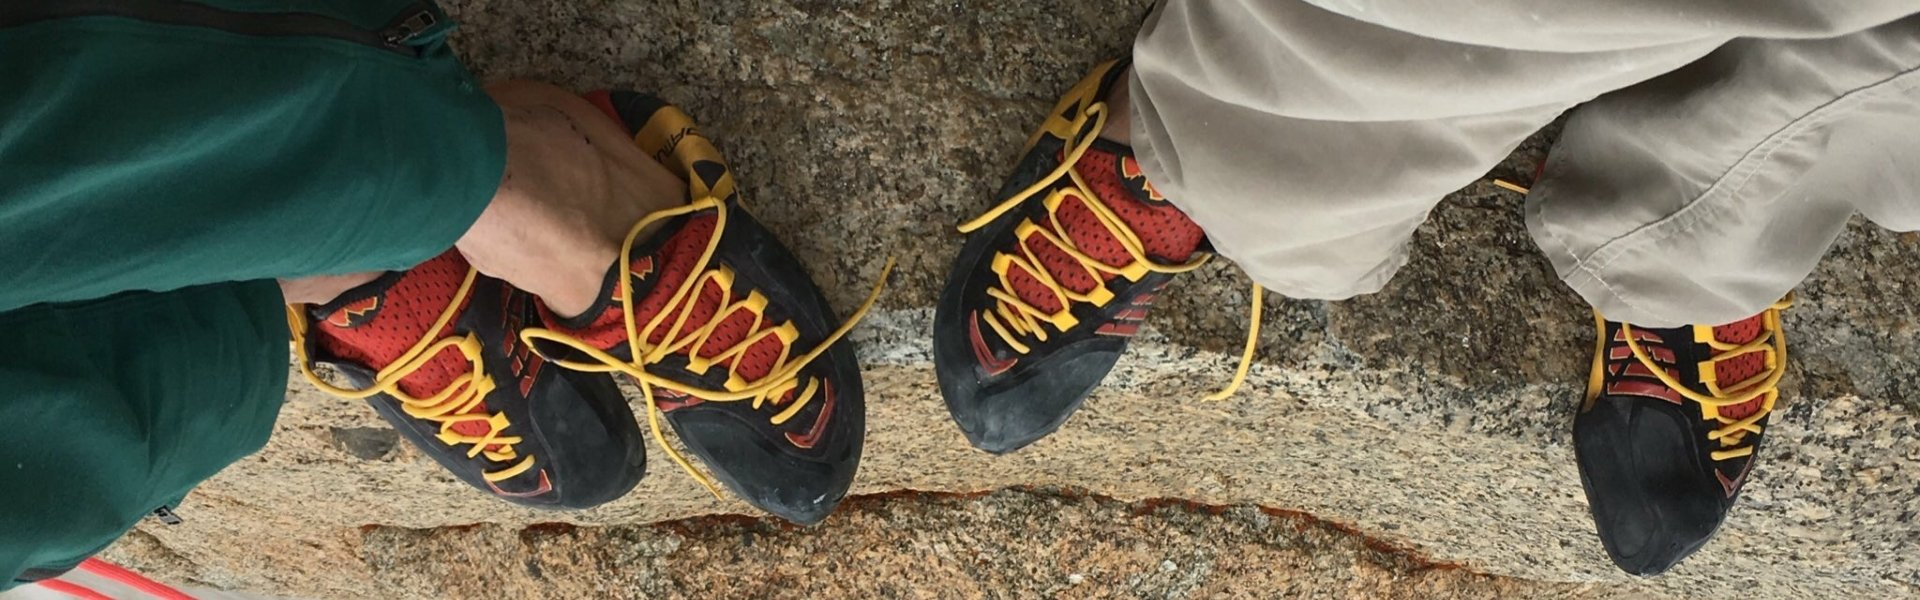 Best Climbing Shoes For Wide Feet Reviewed in Detail